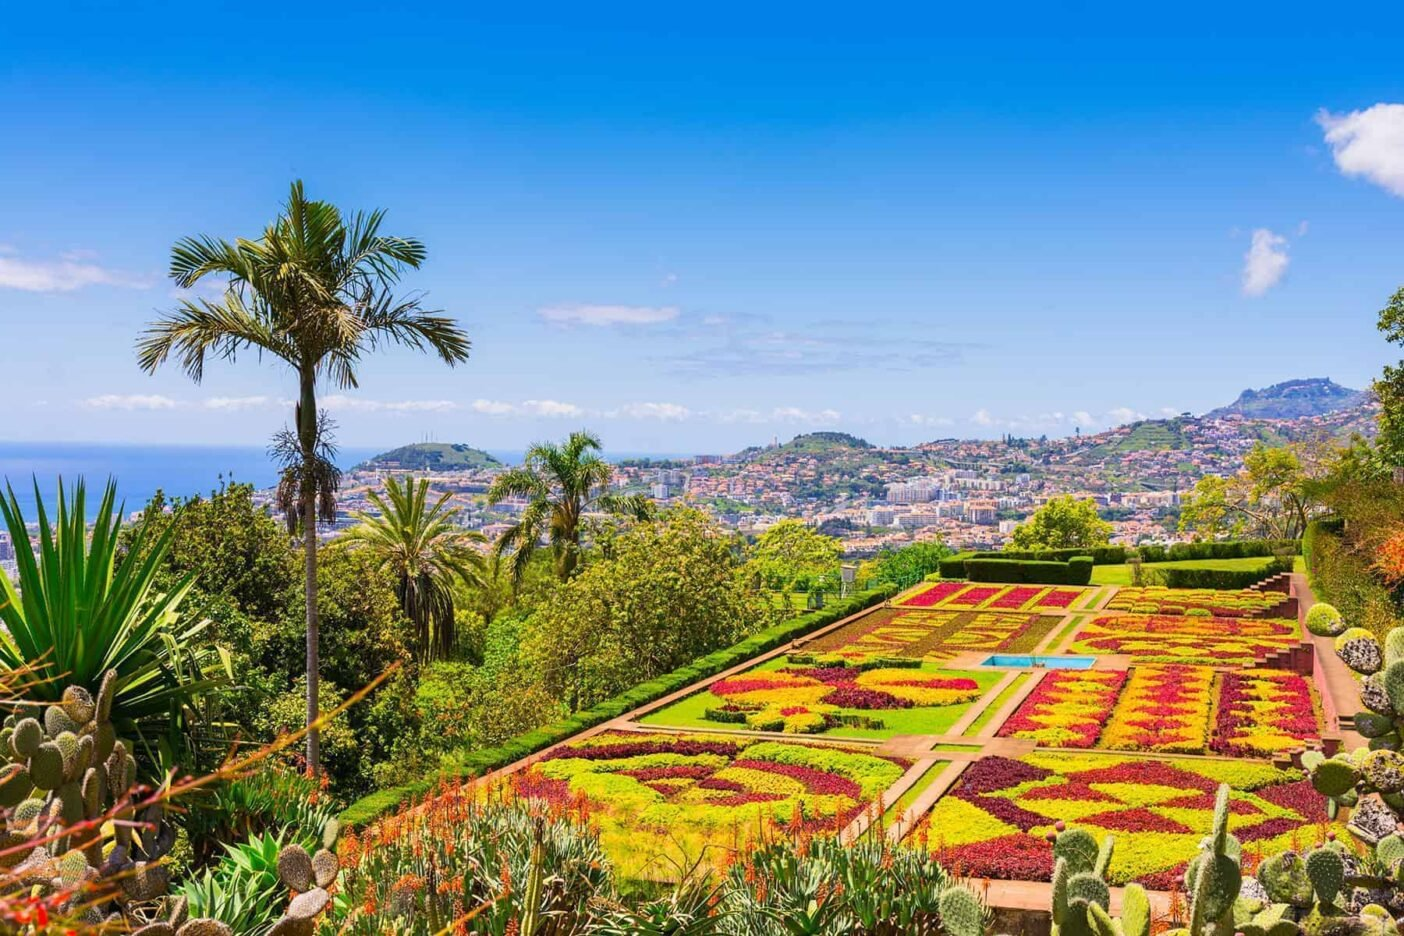 Colourful flowers and flower beds of gardens in Funcgal, Portugal